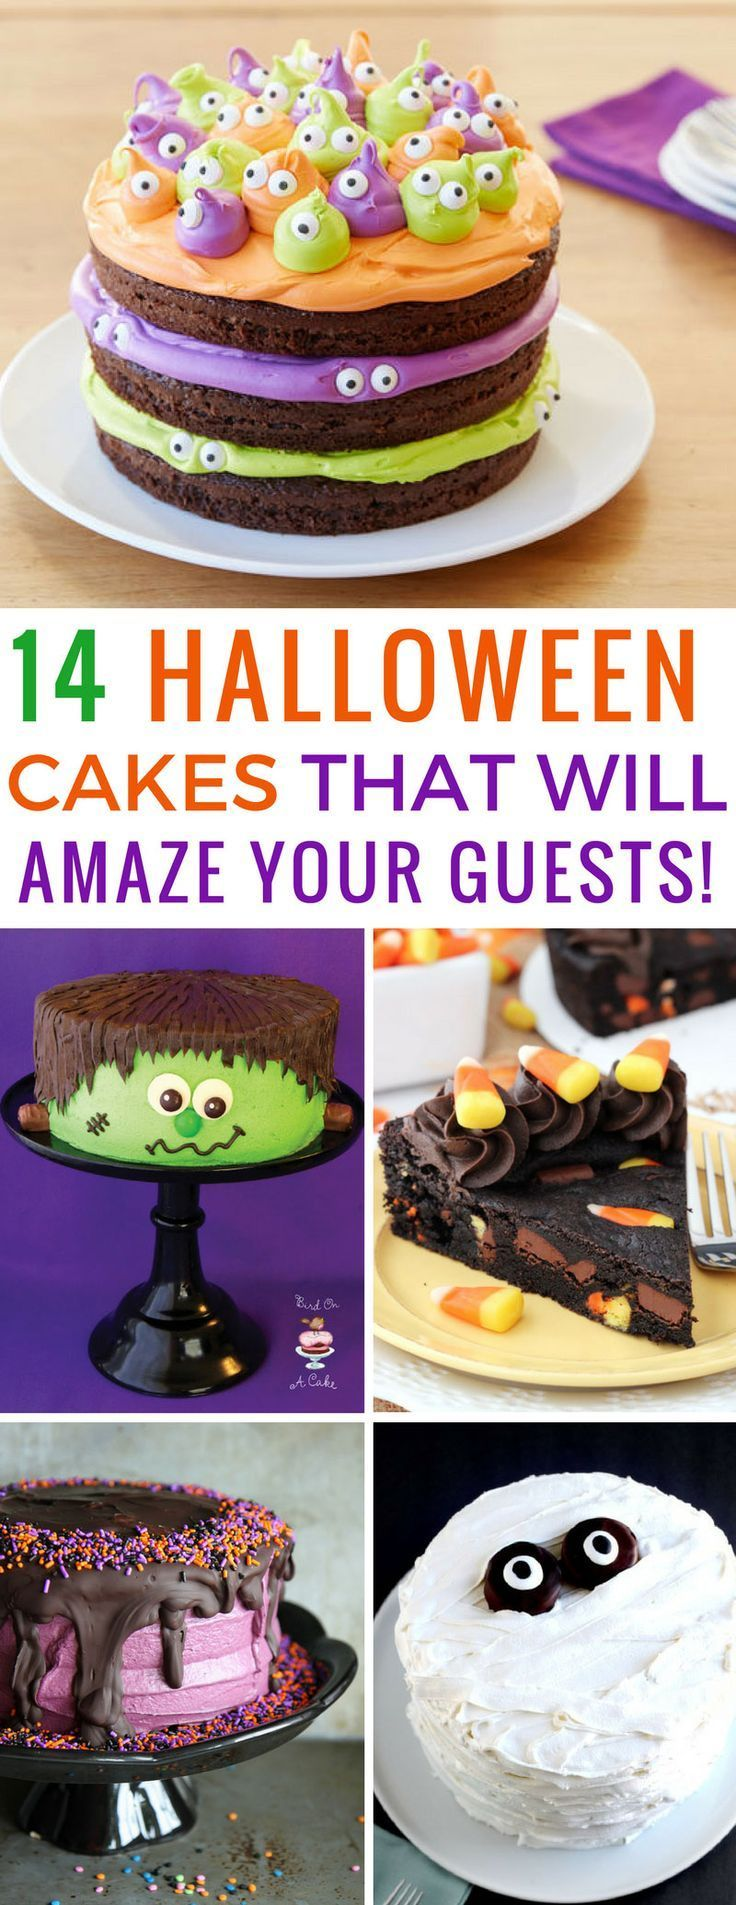 14 Easy Halloween Cake Recipes for Kids – Perfect for Parties!